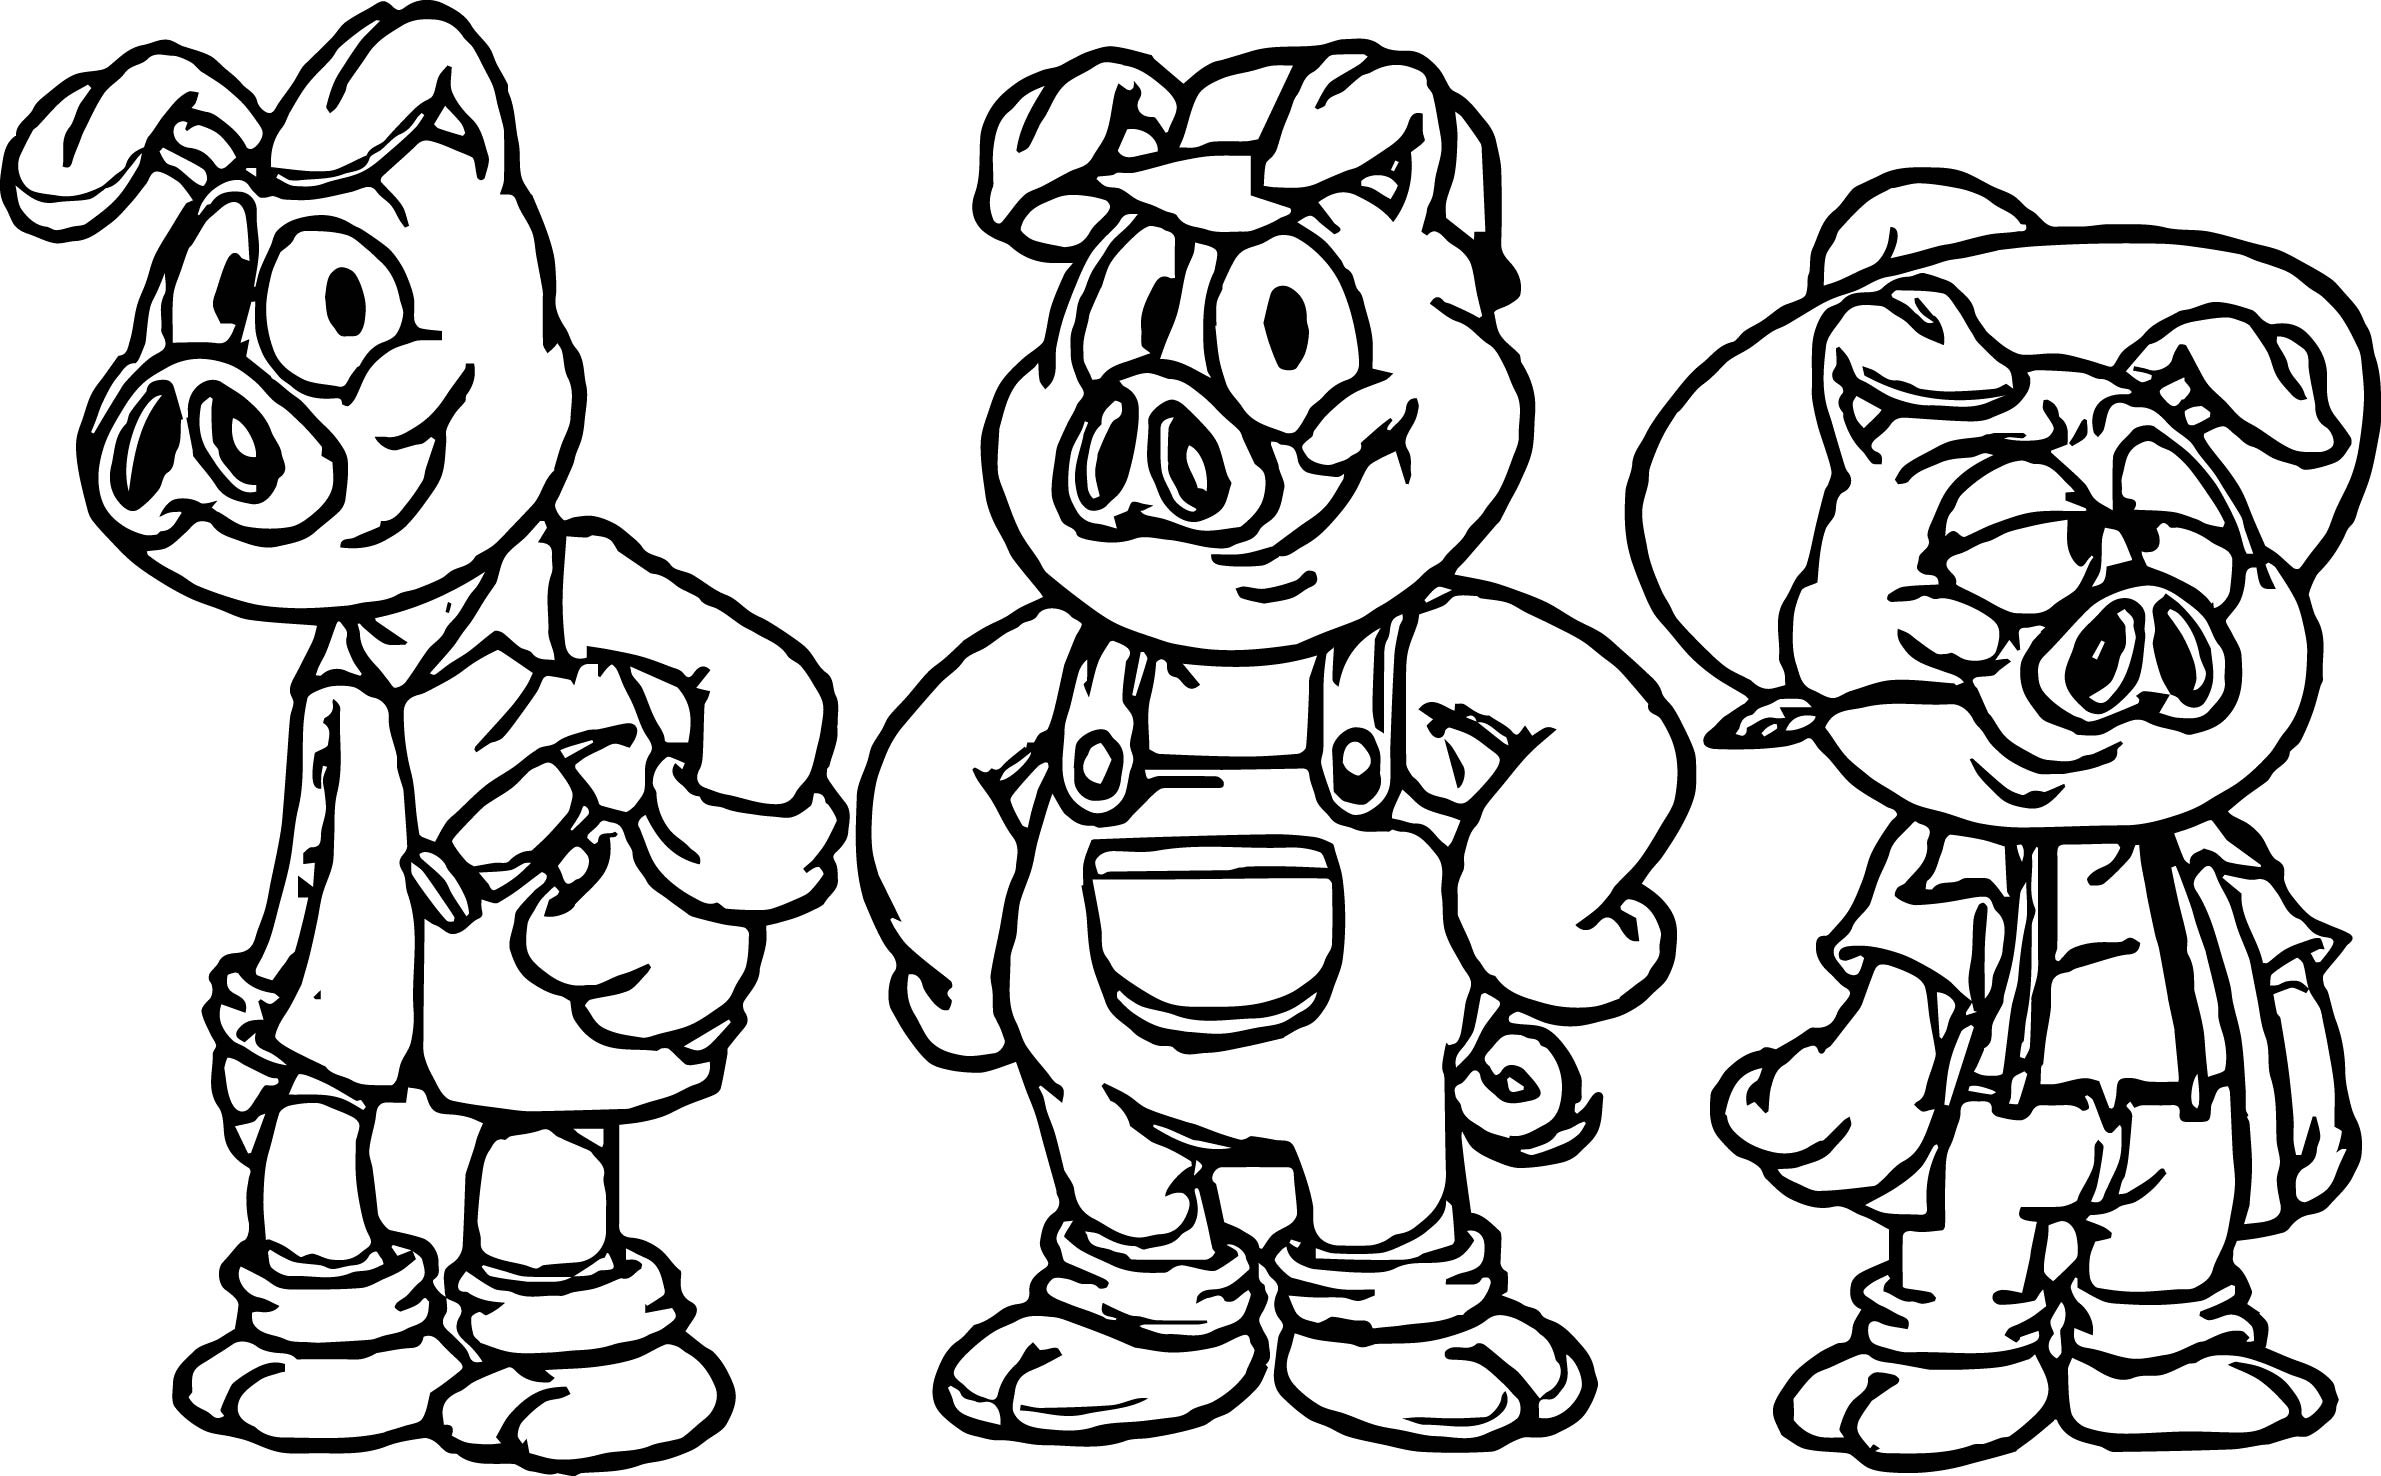 3 little pigs coloring page happy three little pigs dancing coloring page free page pigs little 3 coloring